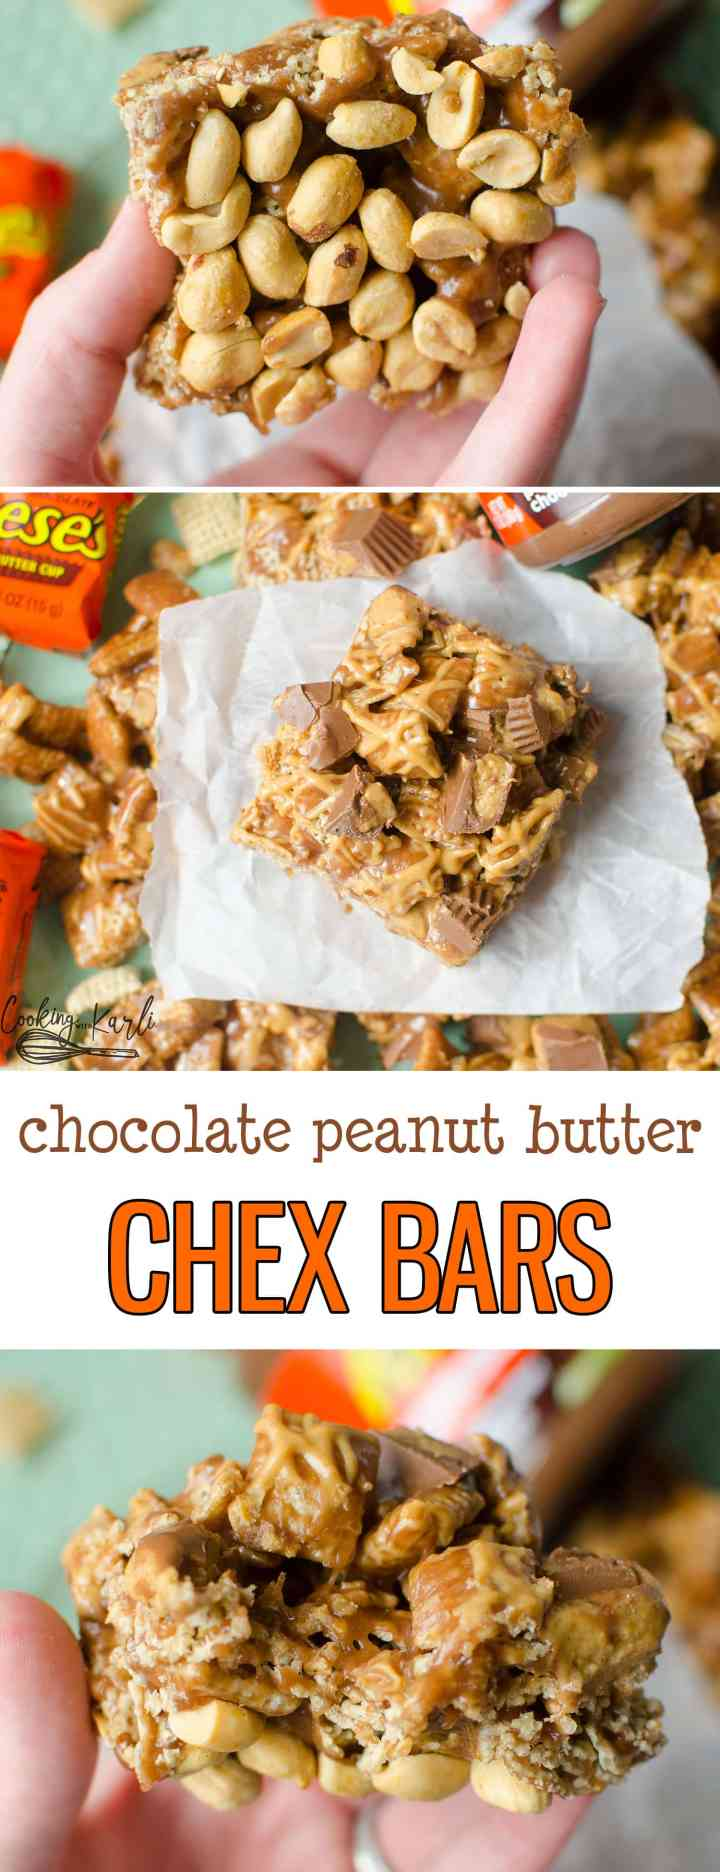 Chocolate Peanut Butter Chex Bars are fully loaded with Reese's Peanut Butter Chocolate Spread, Reese's Peanut Butter Cups, peanut butter drizzle, Chex Cereal and a peanut covered bottom. Any Peanut Butter and Chocolate lover will be in heaven with these! |Cooking with Karli| #chocolate #peanutbutter #chex #cerealbar #dessert #reese's #spreads #dessert #recipe